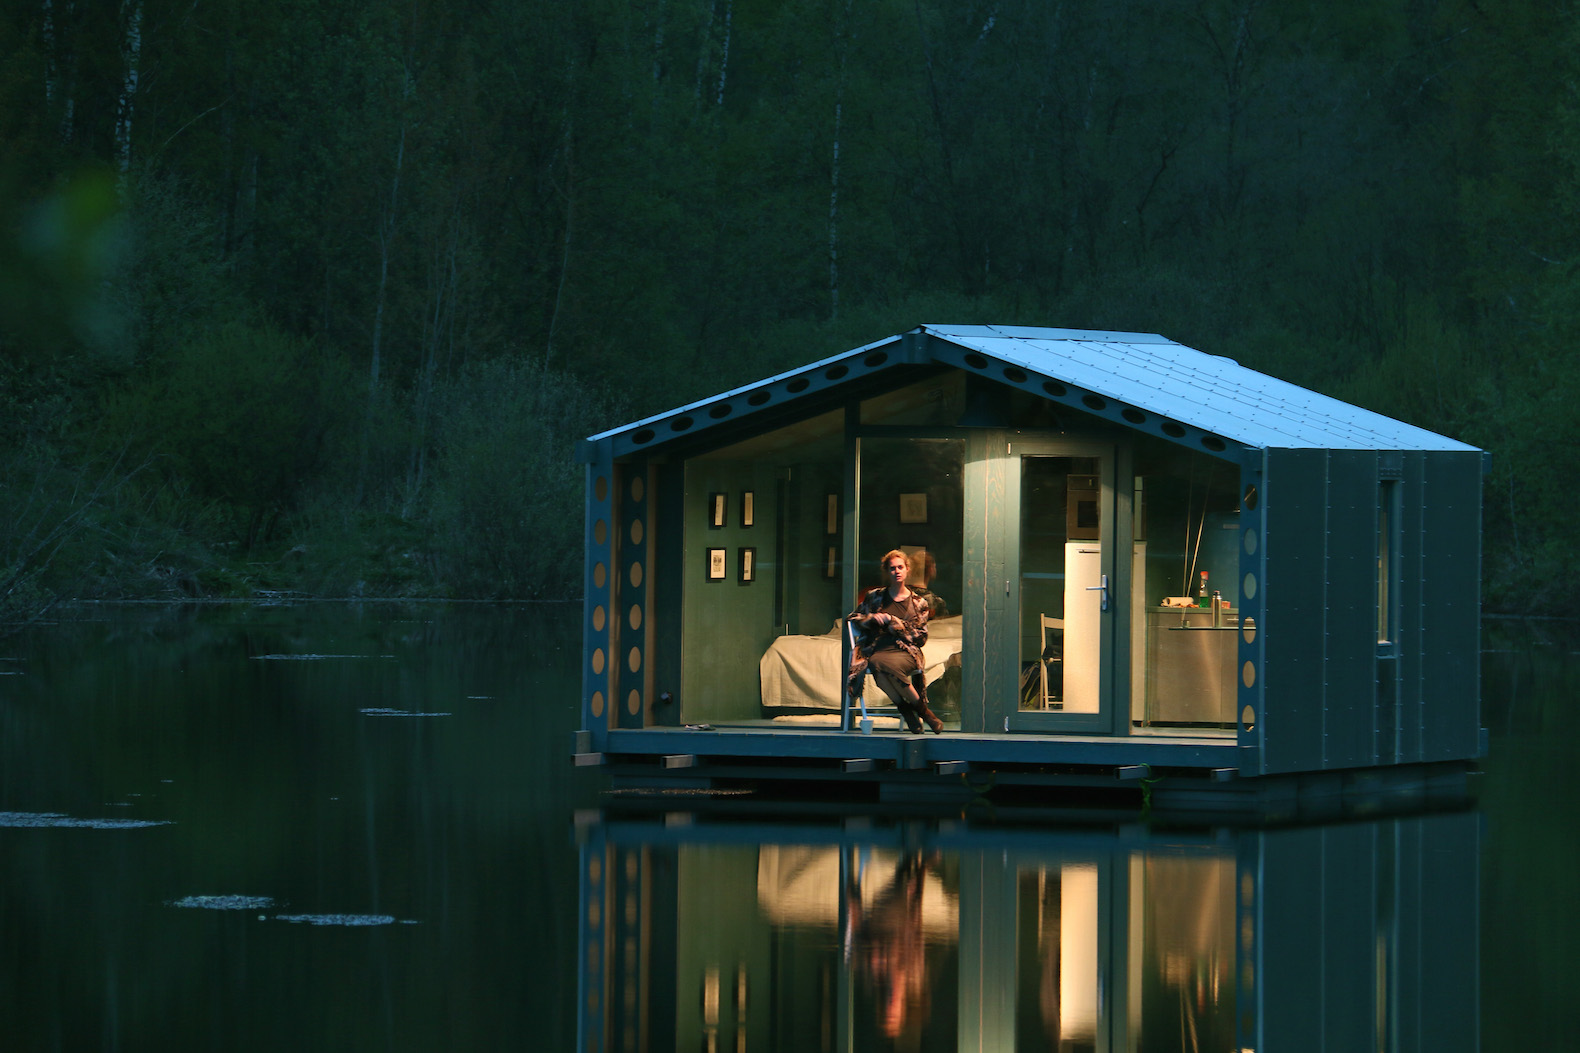 Merveilleux Compact Floating Cabin Pops Up In Extreme Remote Locations